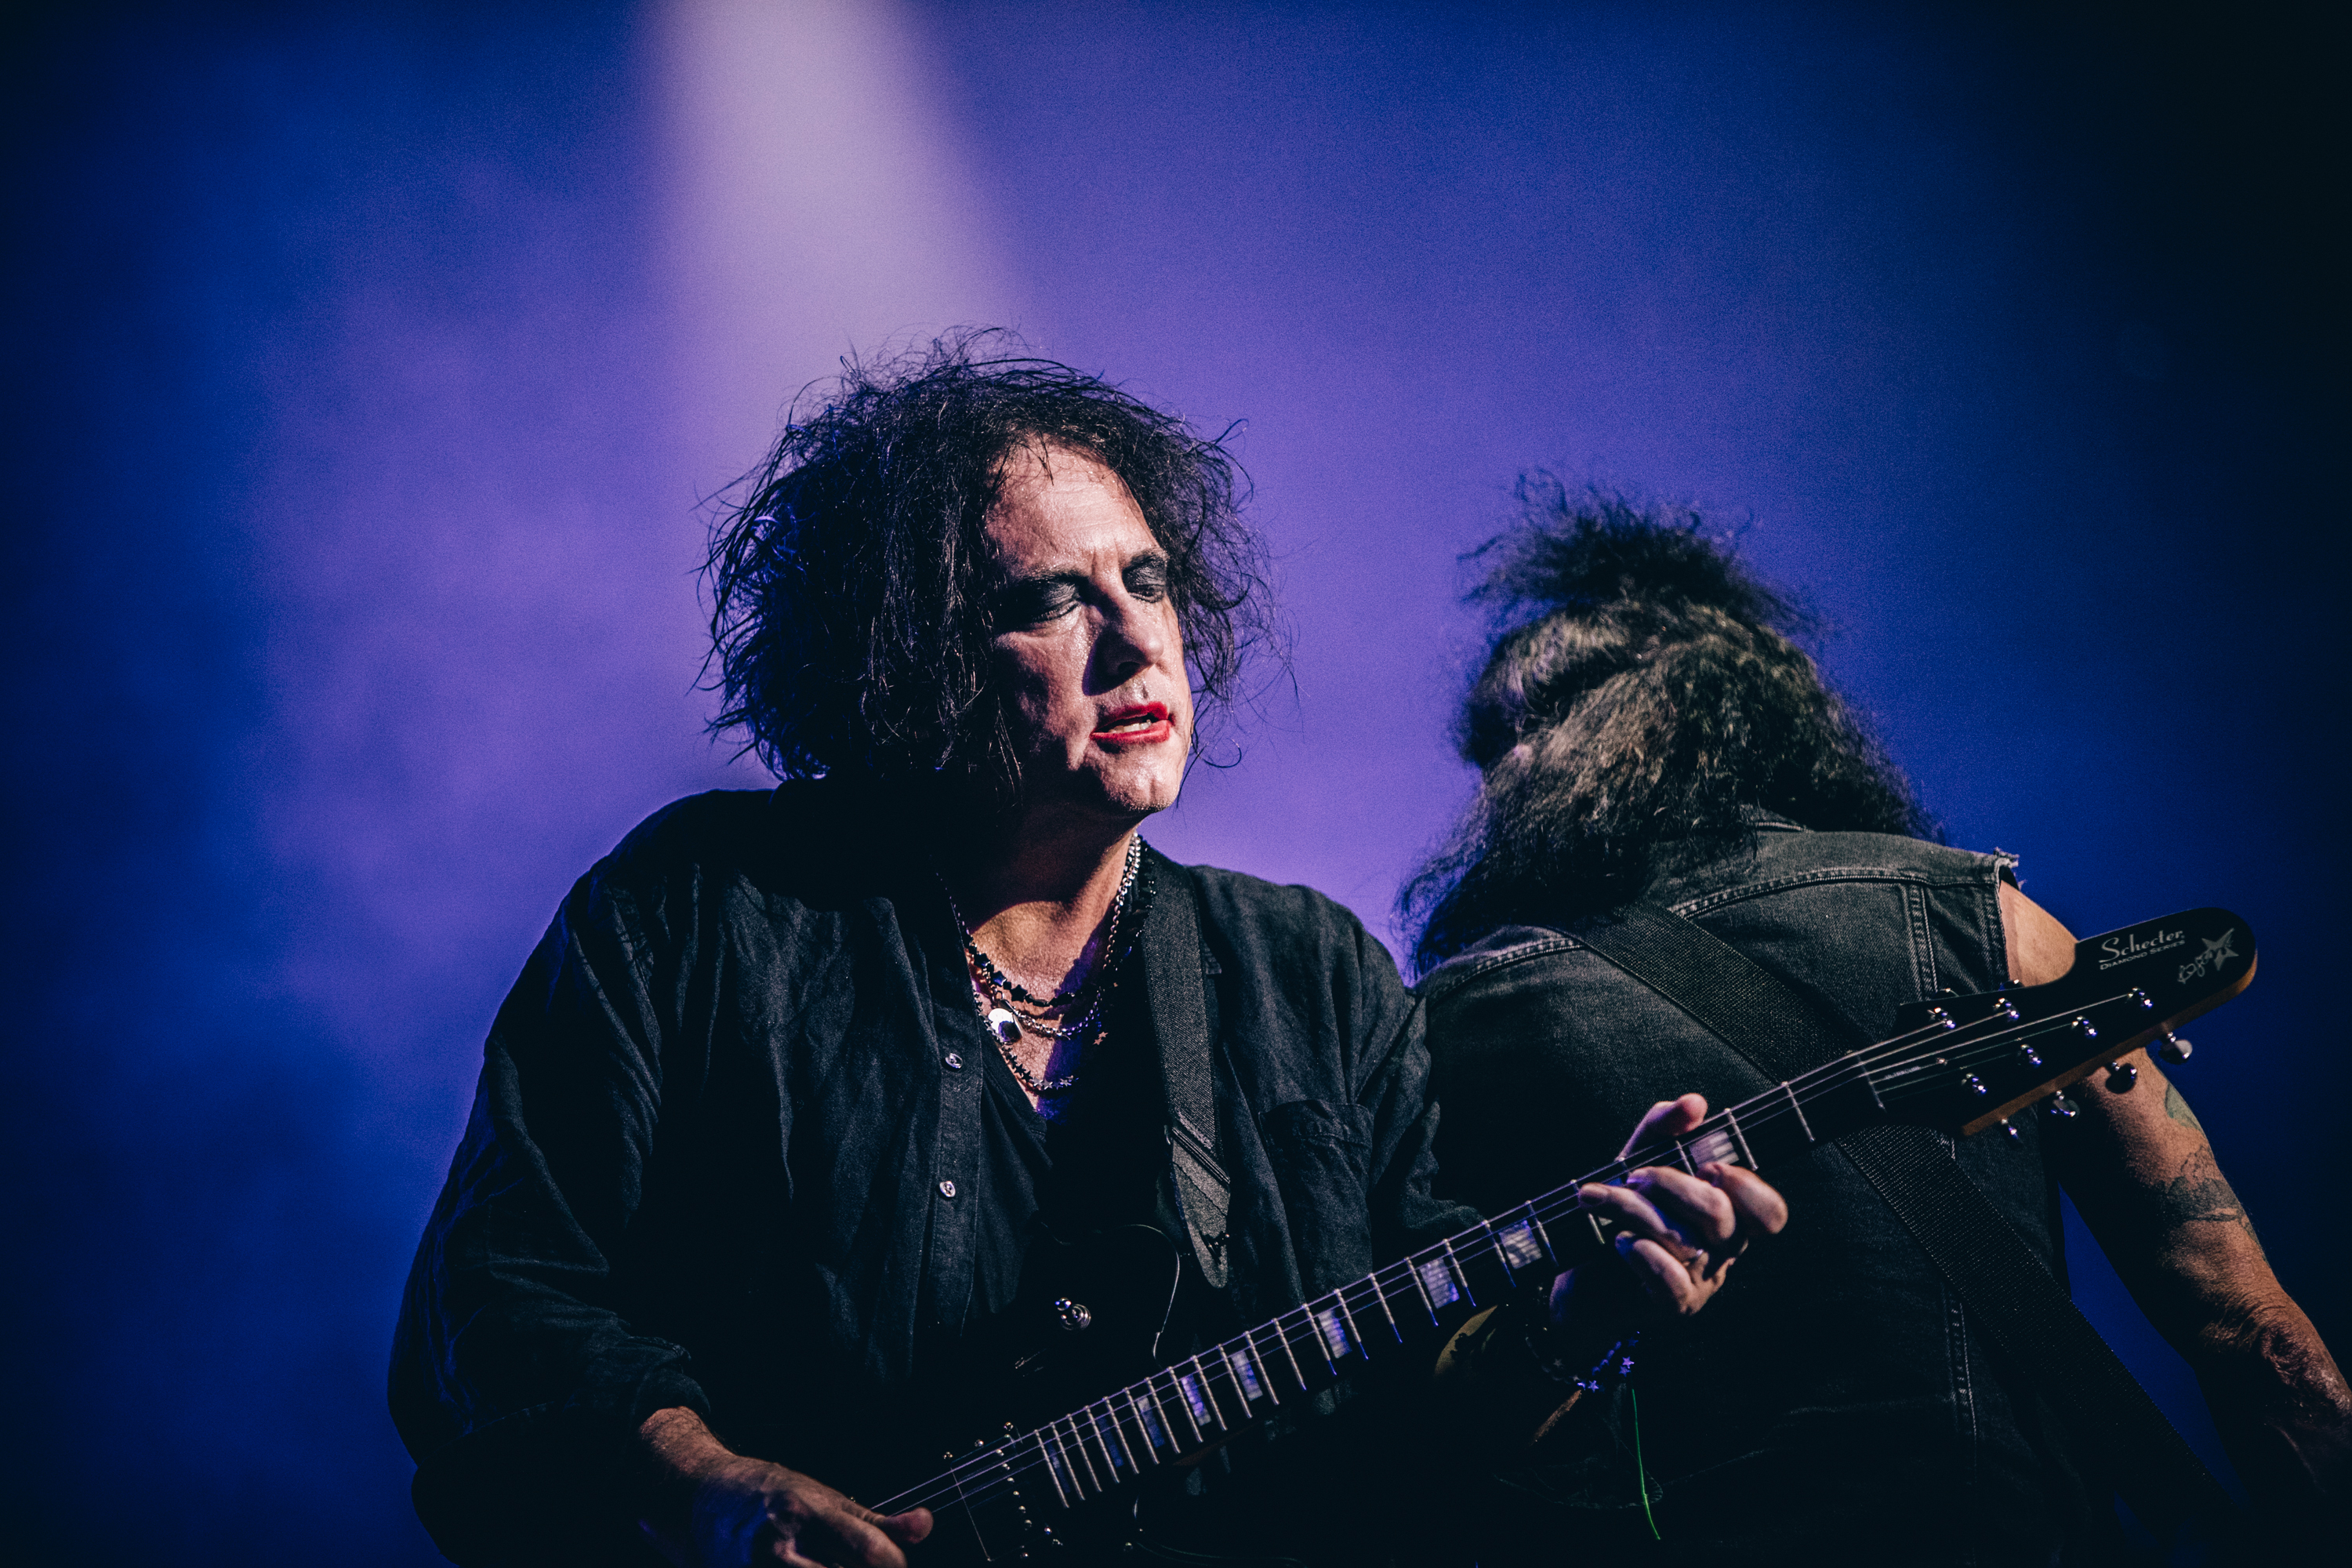 The Cure headlining NOS Alive 2019: 'A masterclass in how it's done'